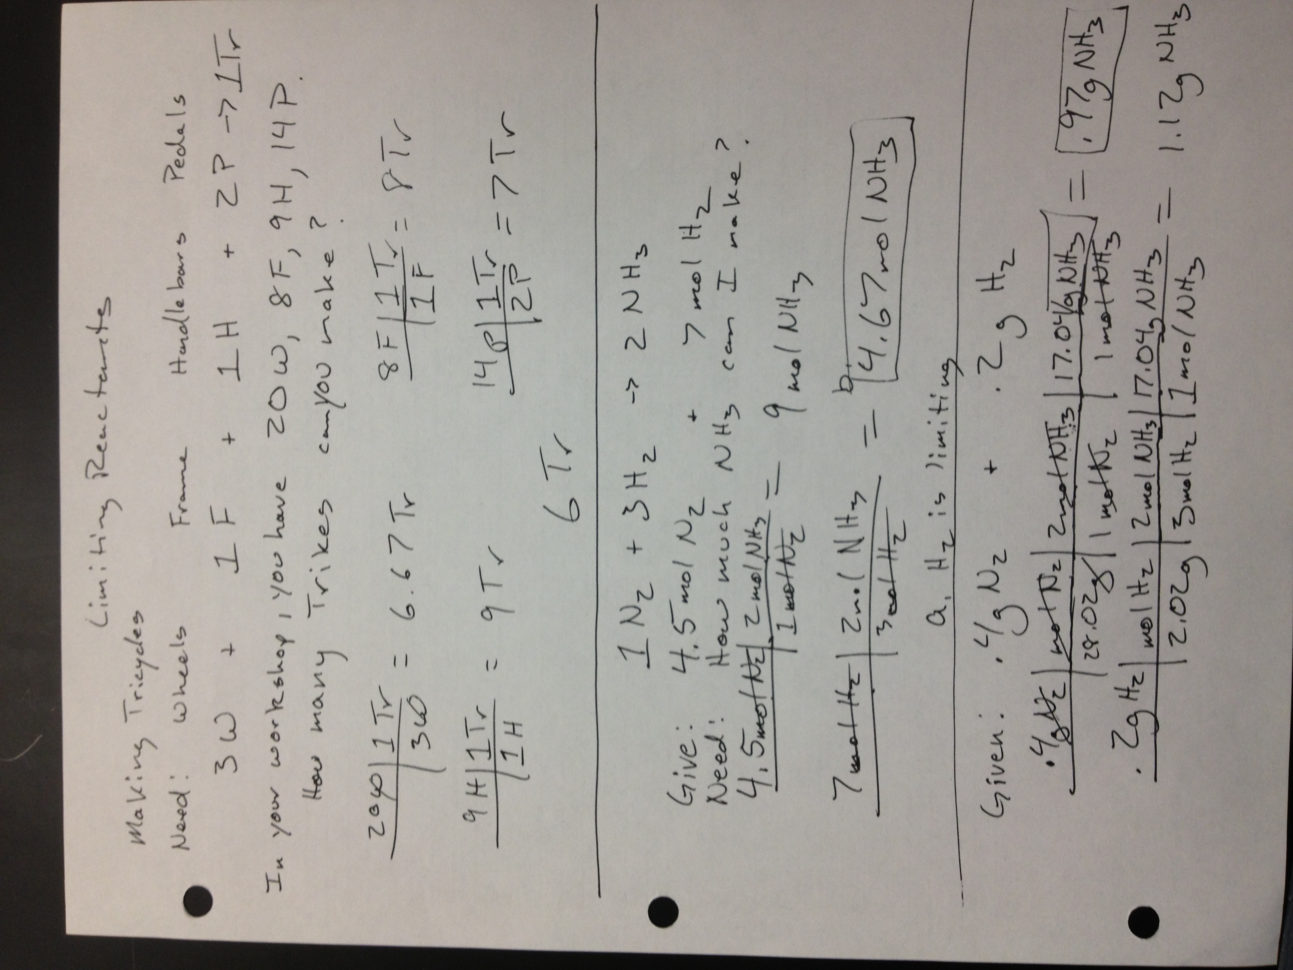 Limiting Reagent Worksheet 1 Answers Fxund